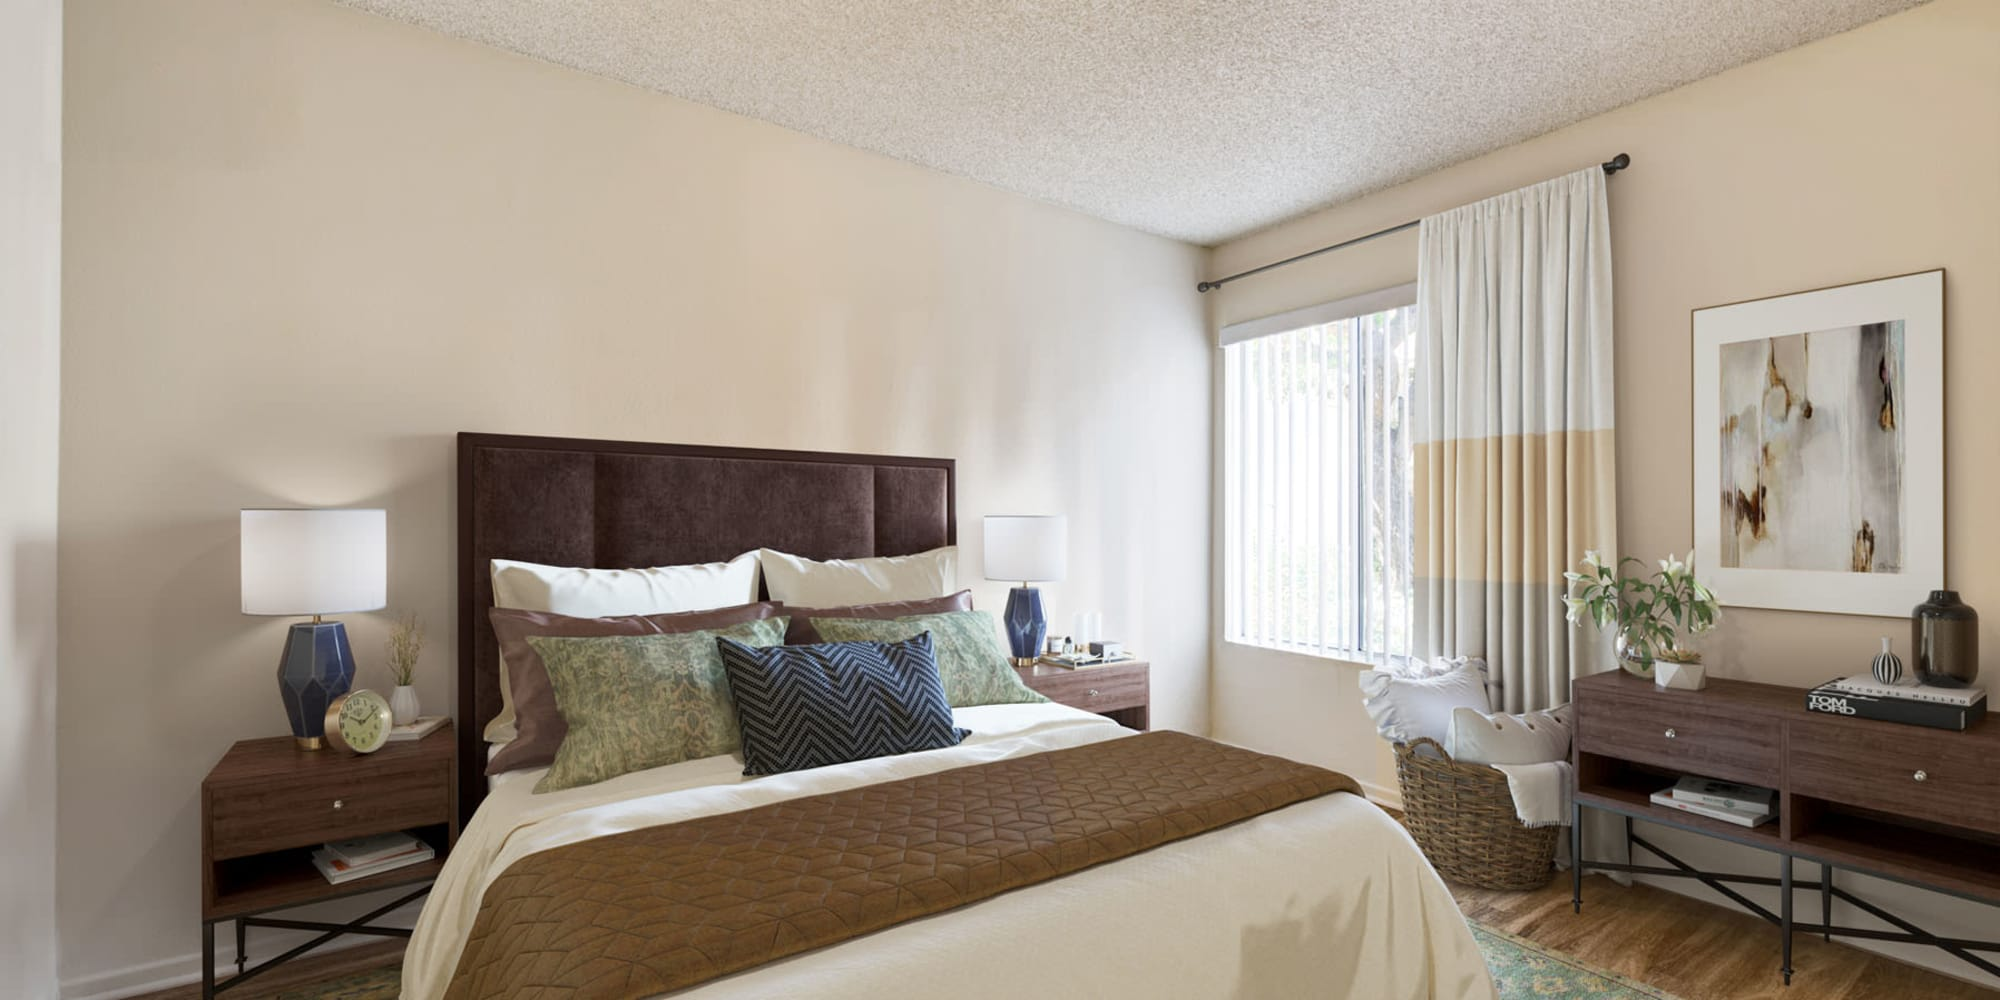 Well-furnished bedroom with a large bay window and vertical blinds in a model home at Village Pointe in Northridge, California